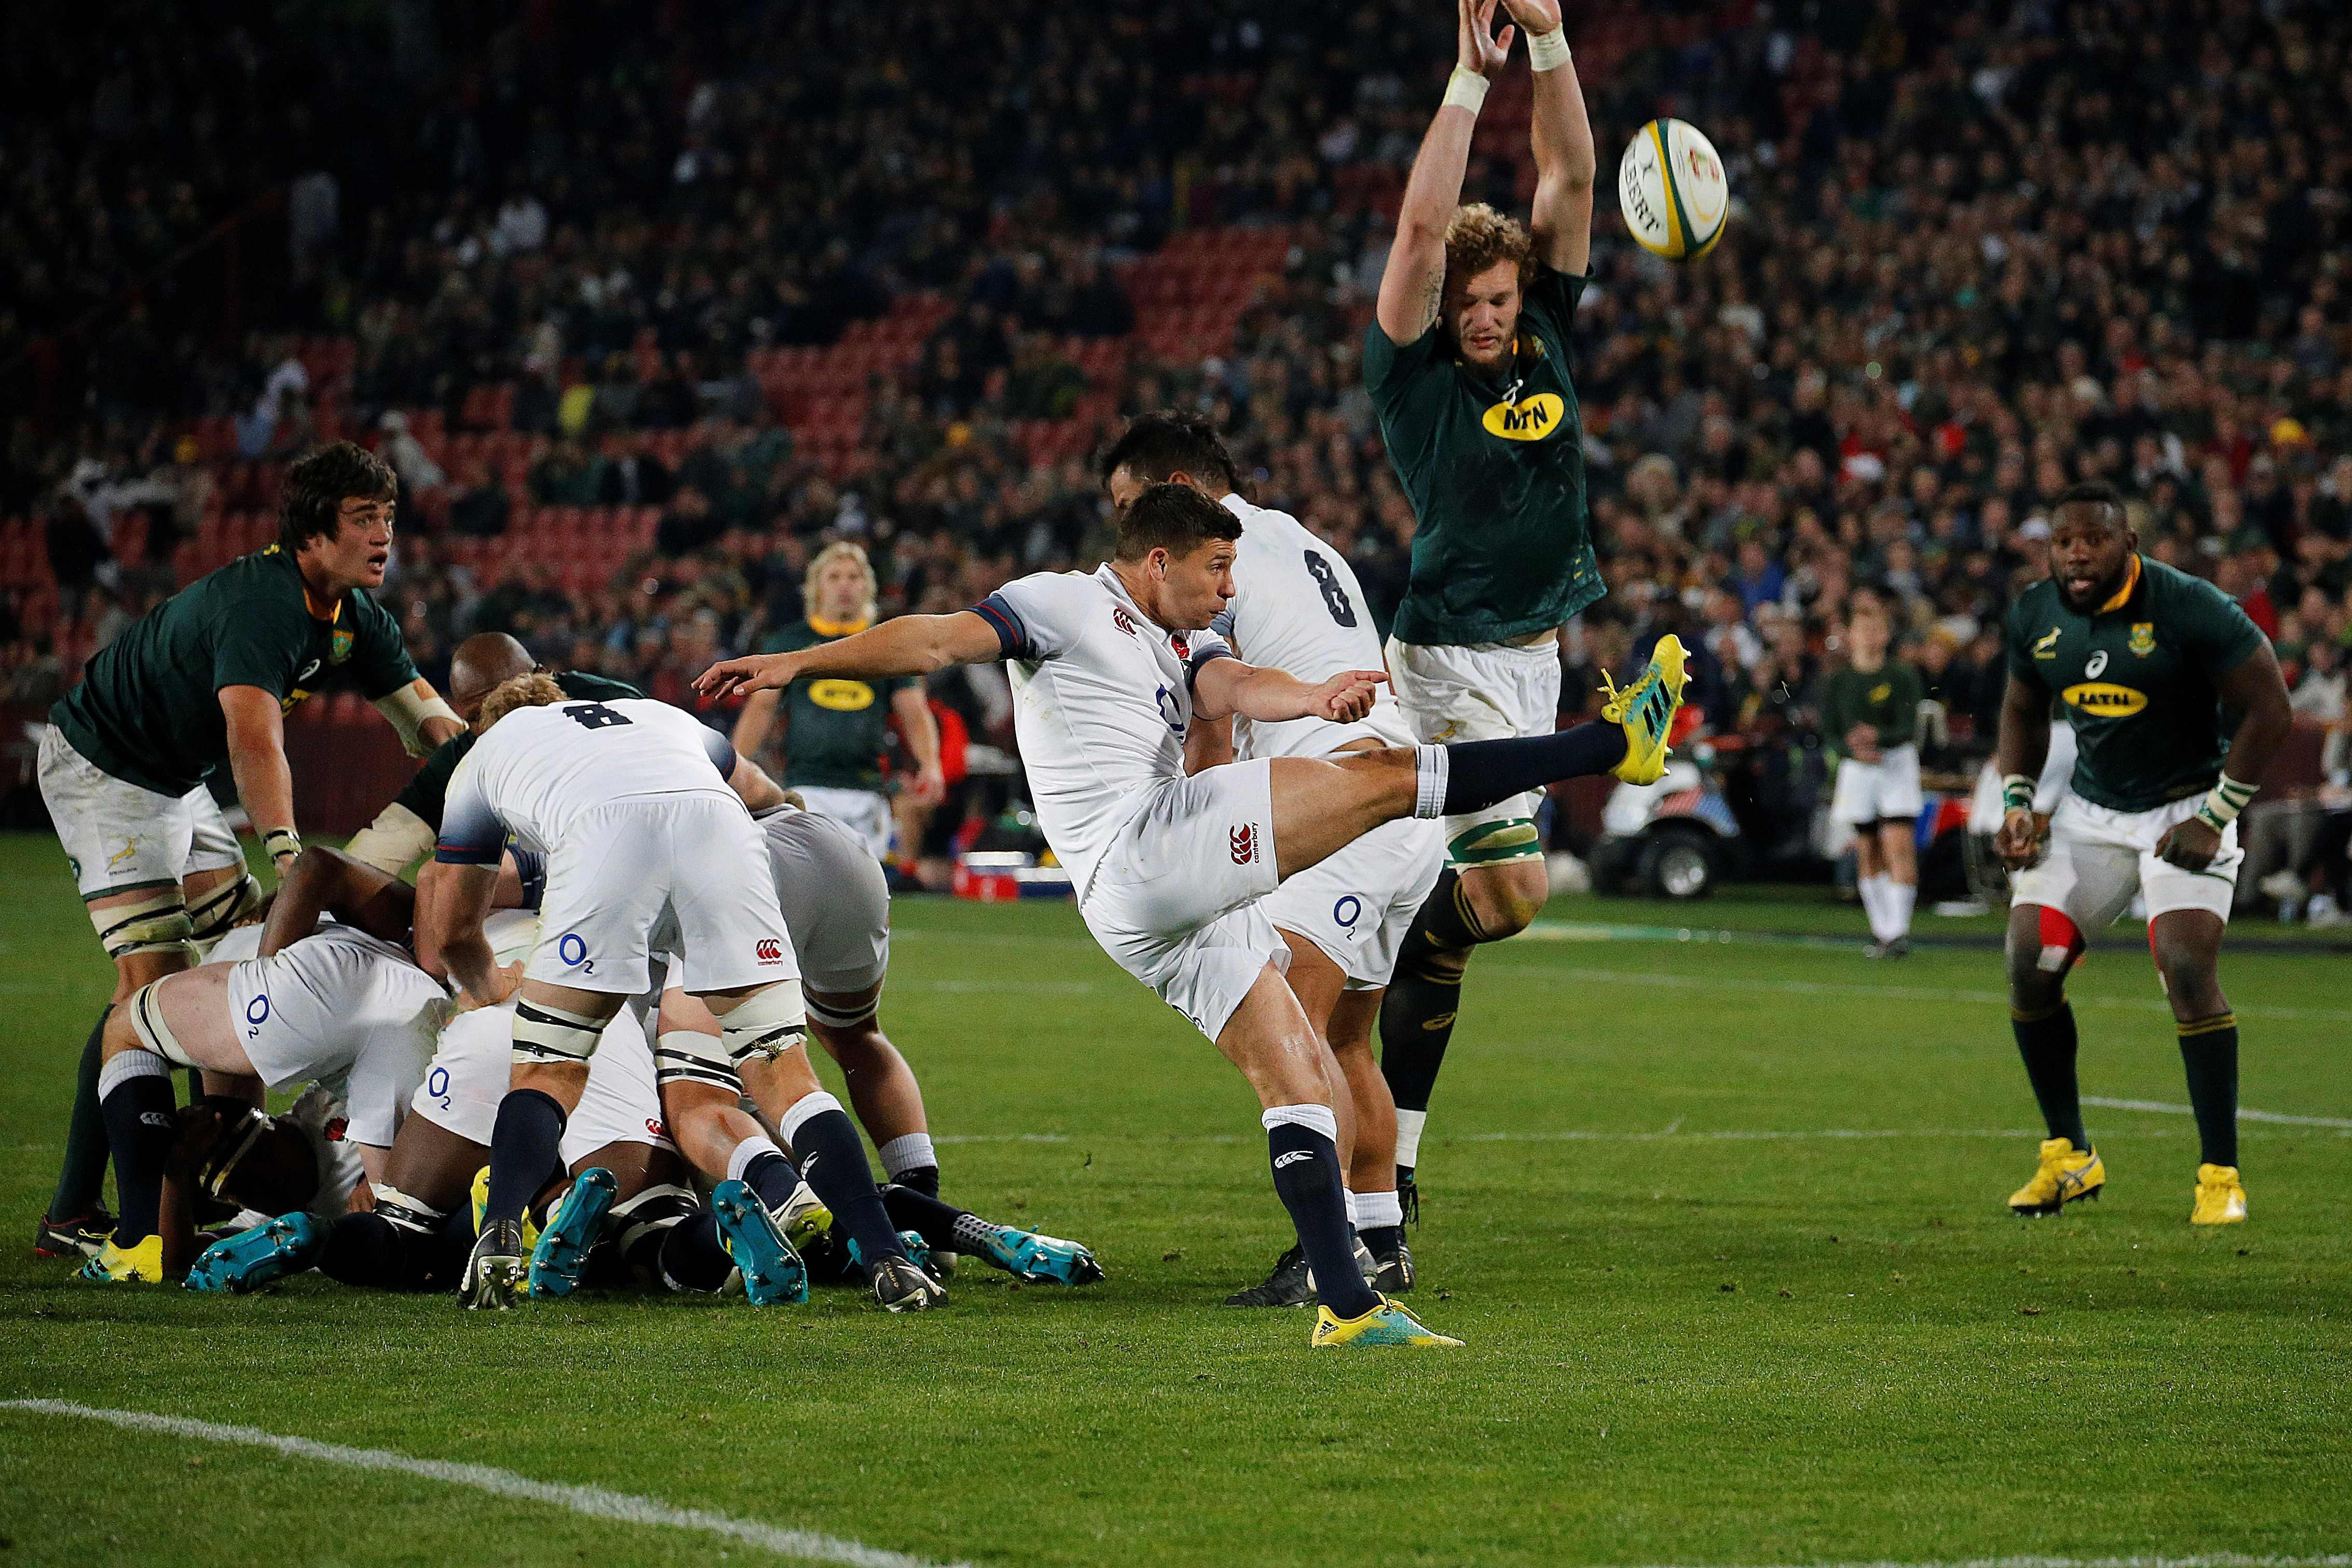 Fly-half George Ford kicks the ball away from danger during the first test match between the two nations